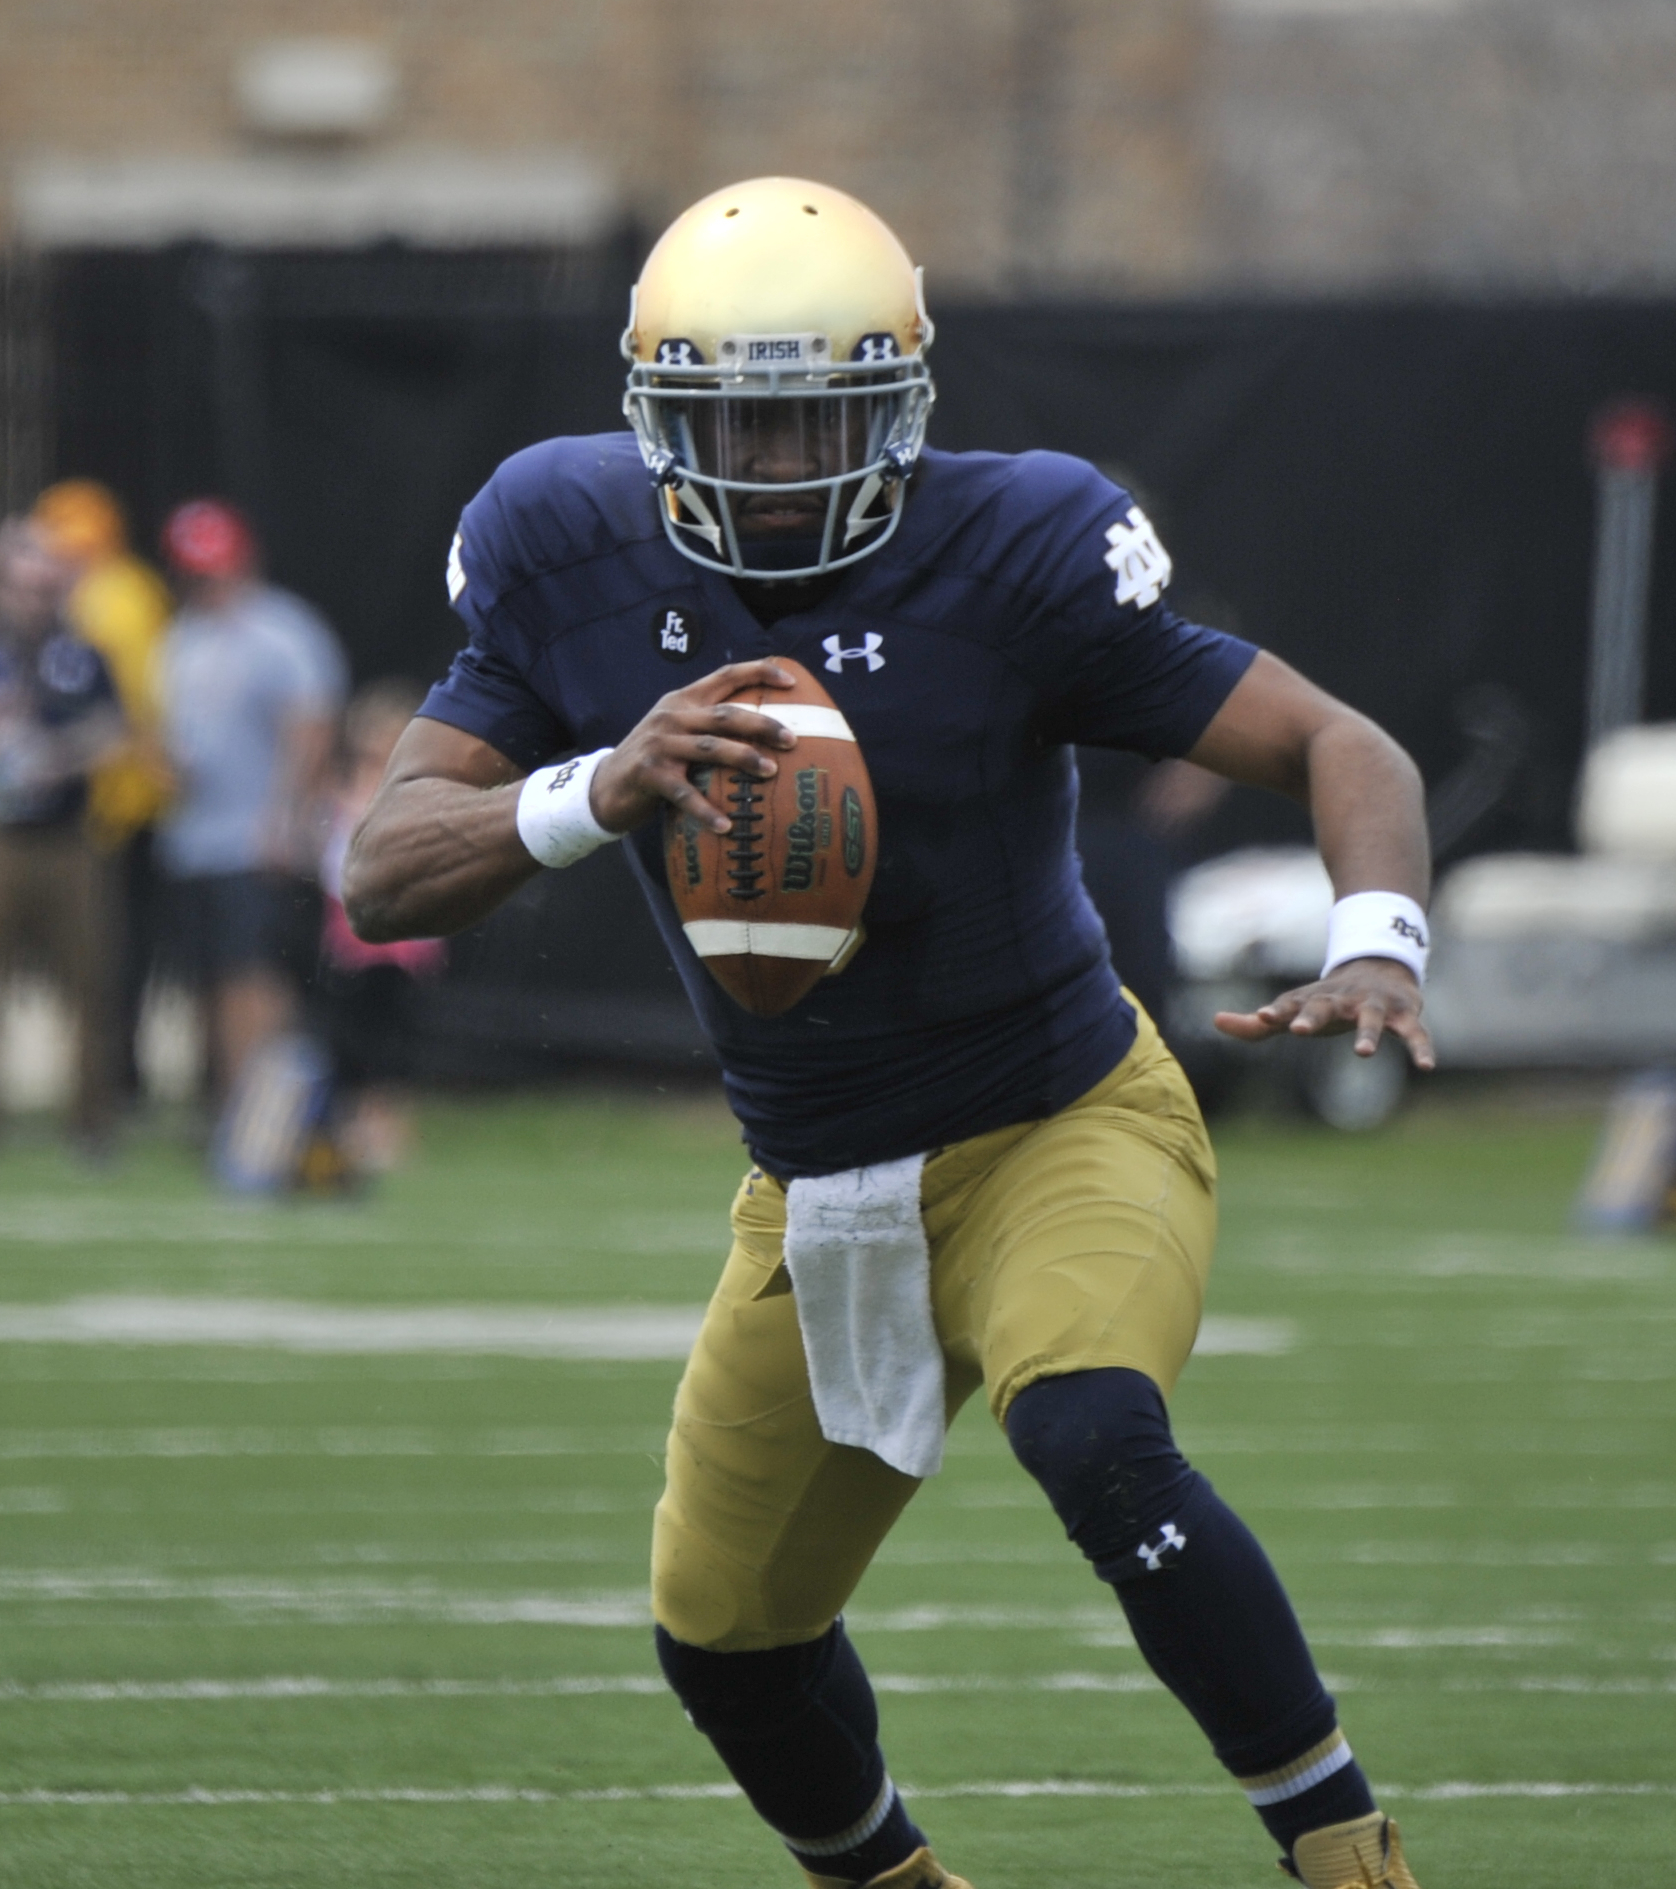 Notre Dame quarterback Everett Golson sprints upfield during the Blue Gold game Saturday April 18, 2015 in South Bend, Ind. (AP Photo/Joe Raymond)